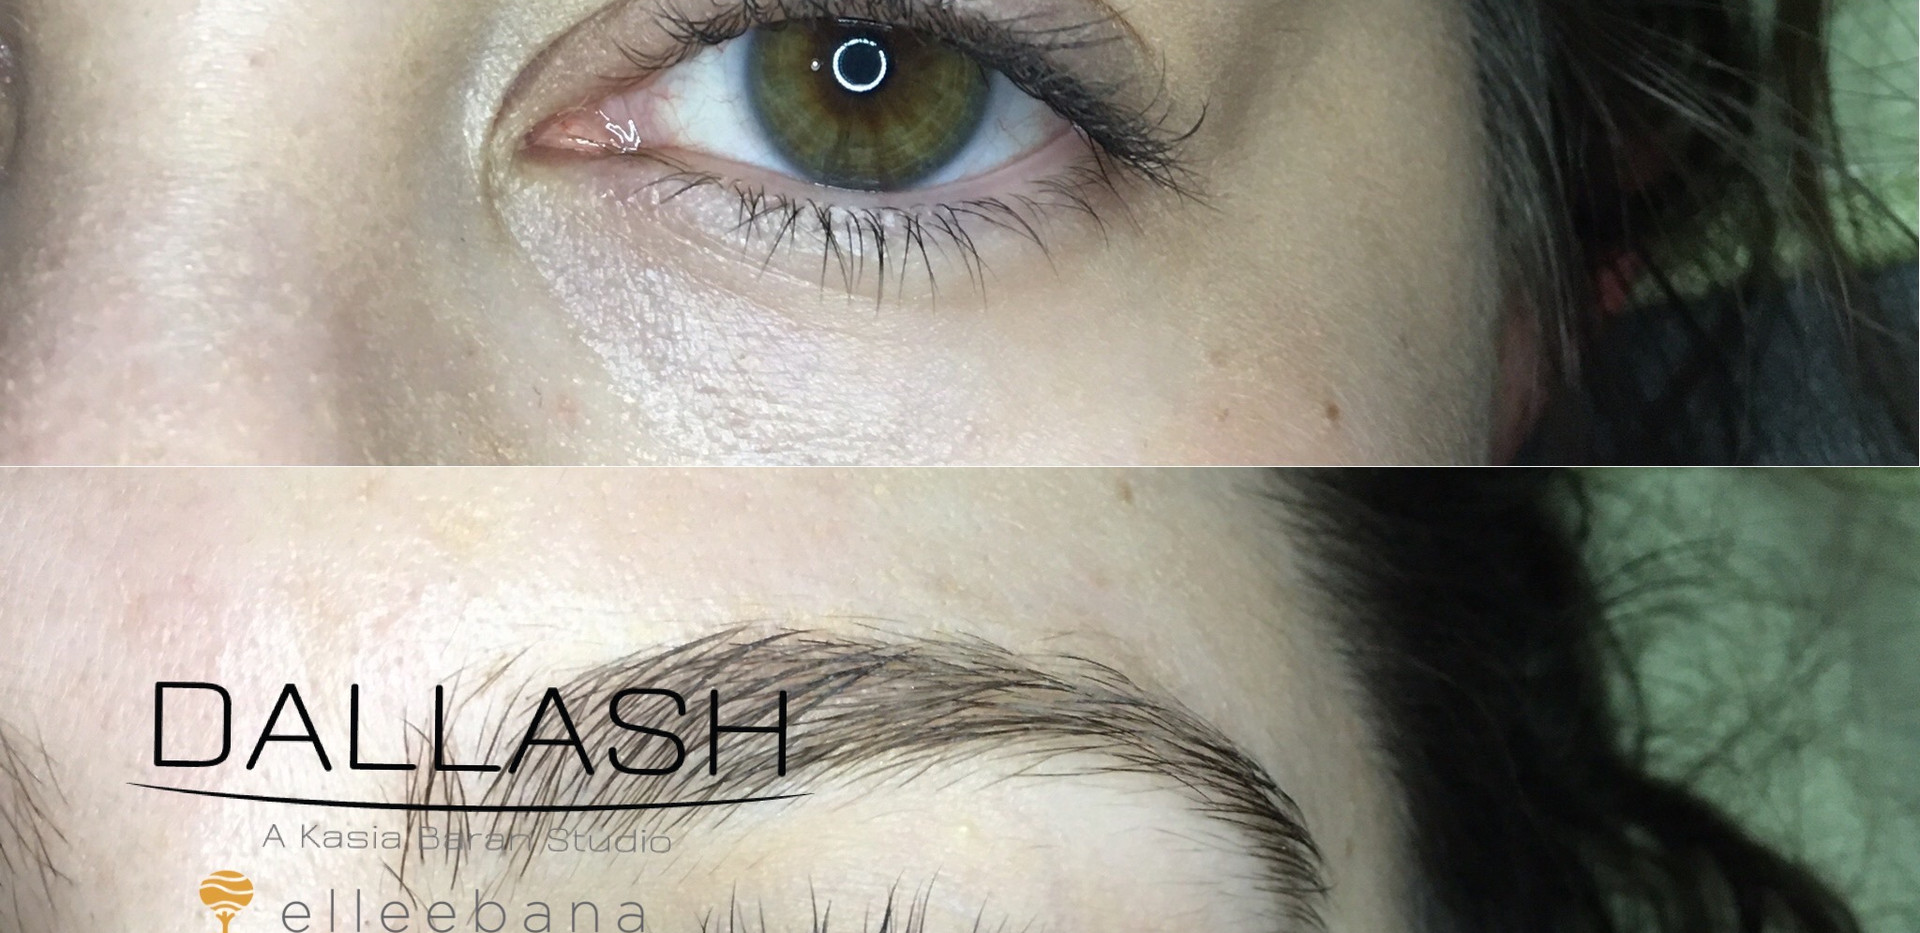 The EXTEME done by Raven - lashlift-lash